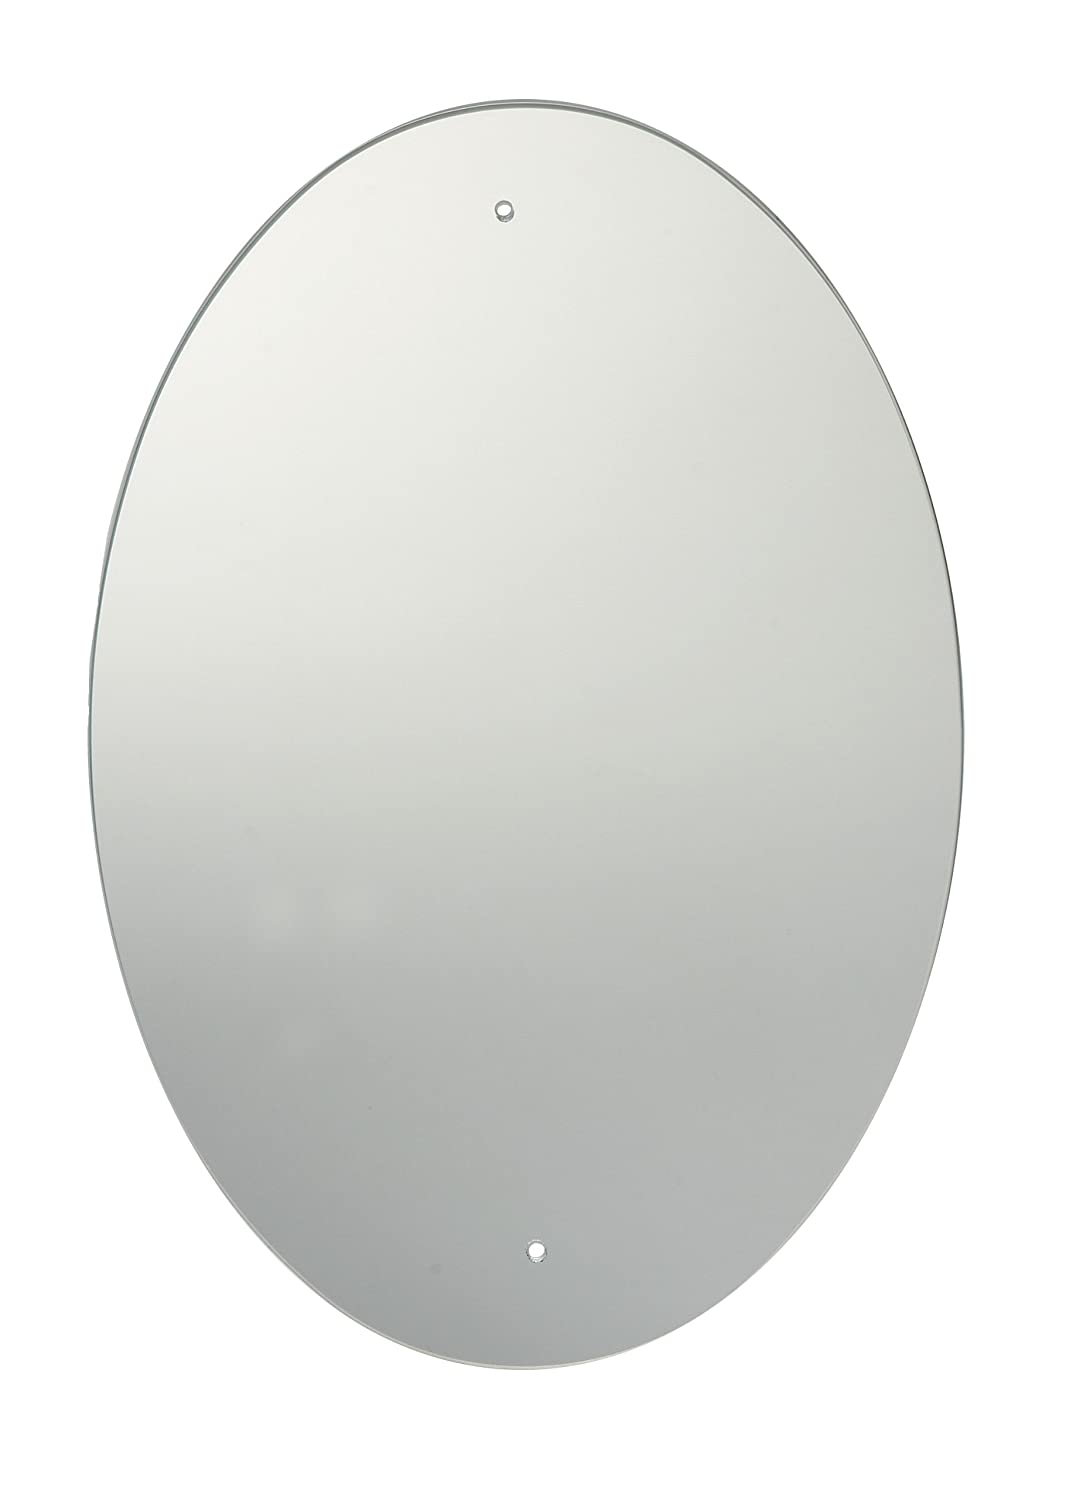 60 x 45cm Oval Bathroom Mirror with Drilled Holes & Chrome Cap Wall Hanging Fixing Kit